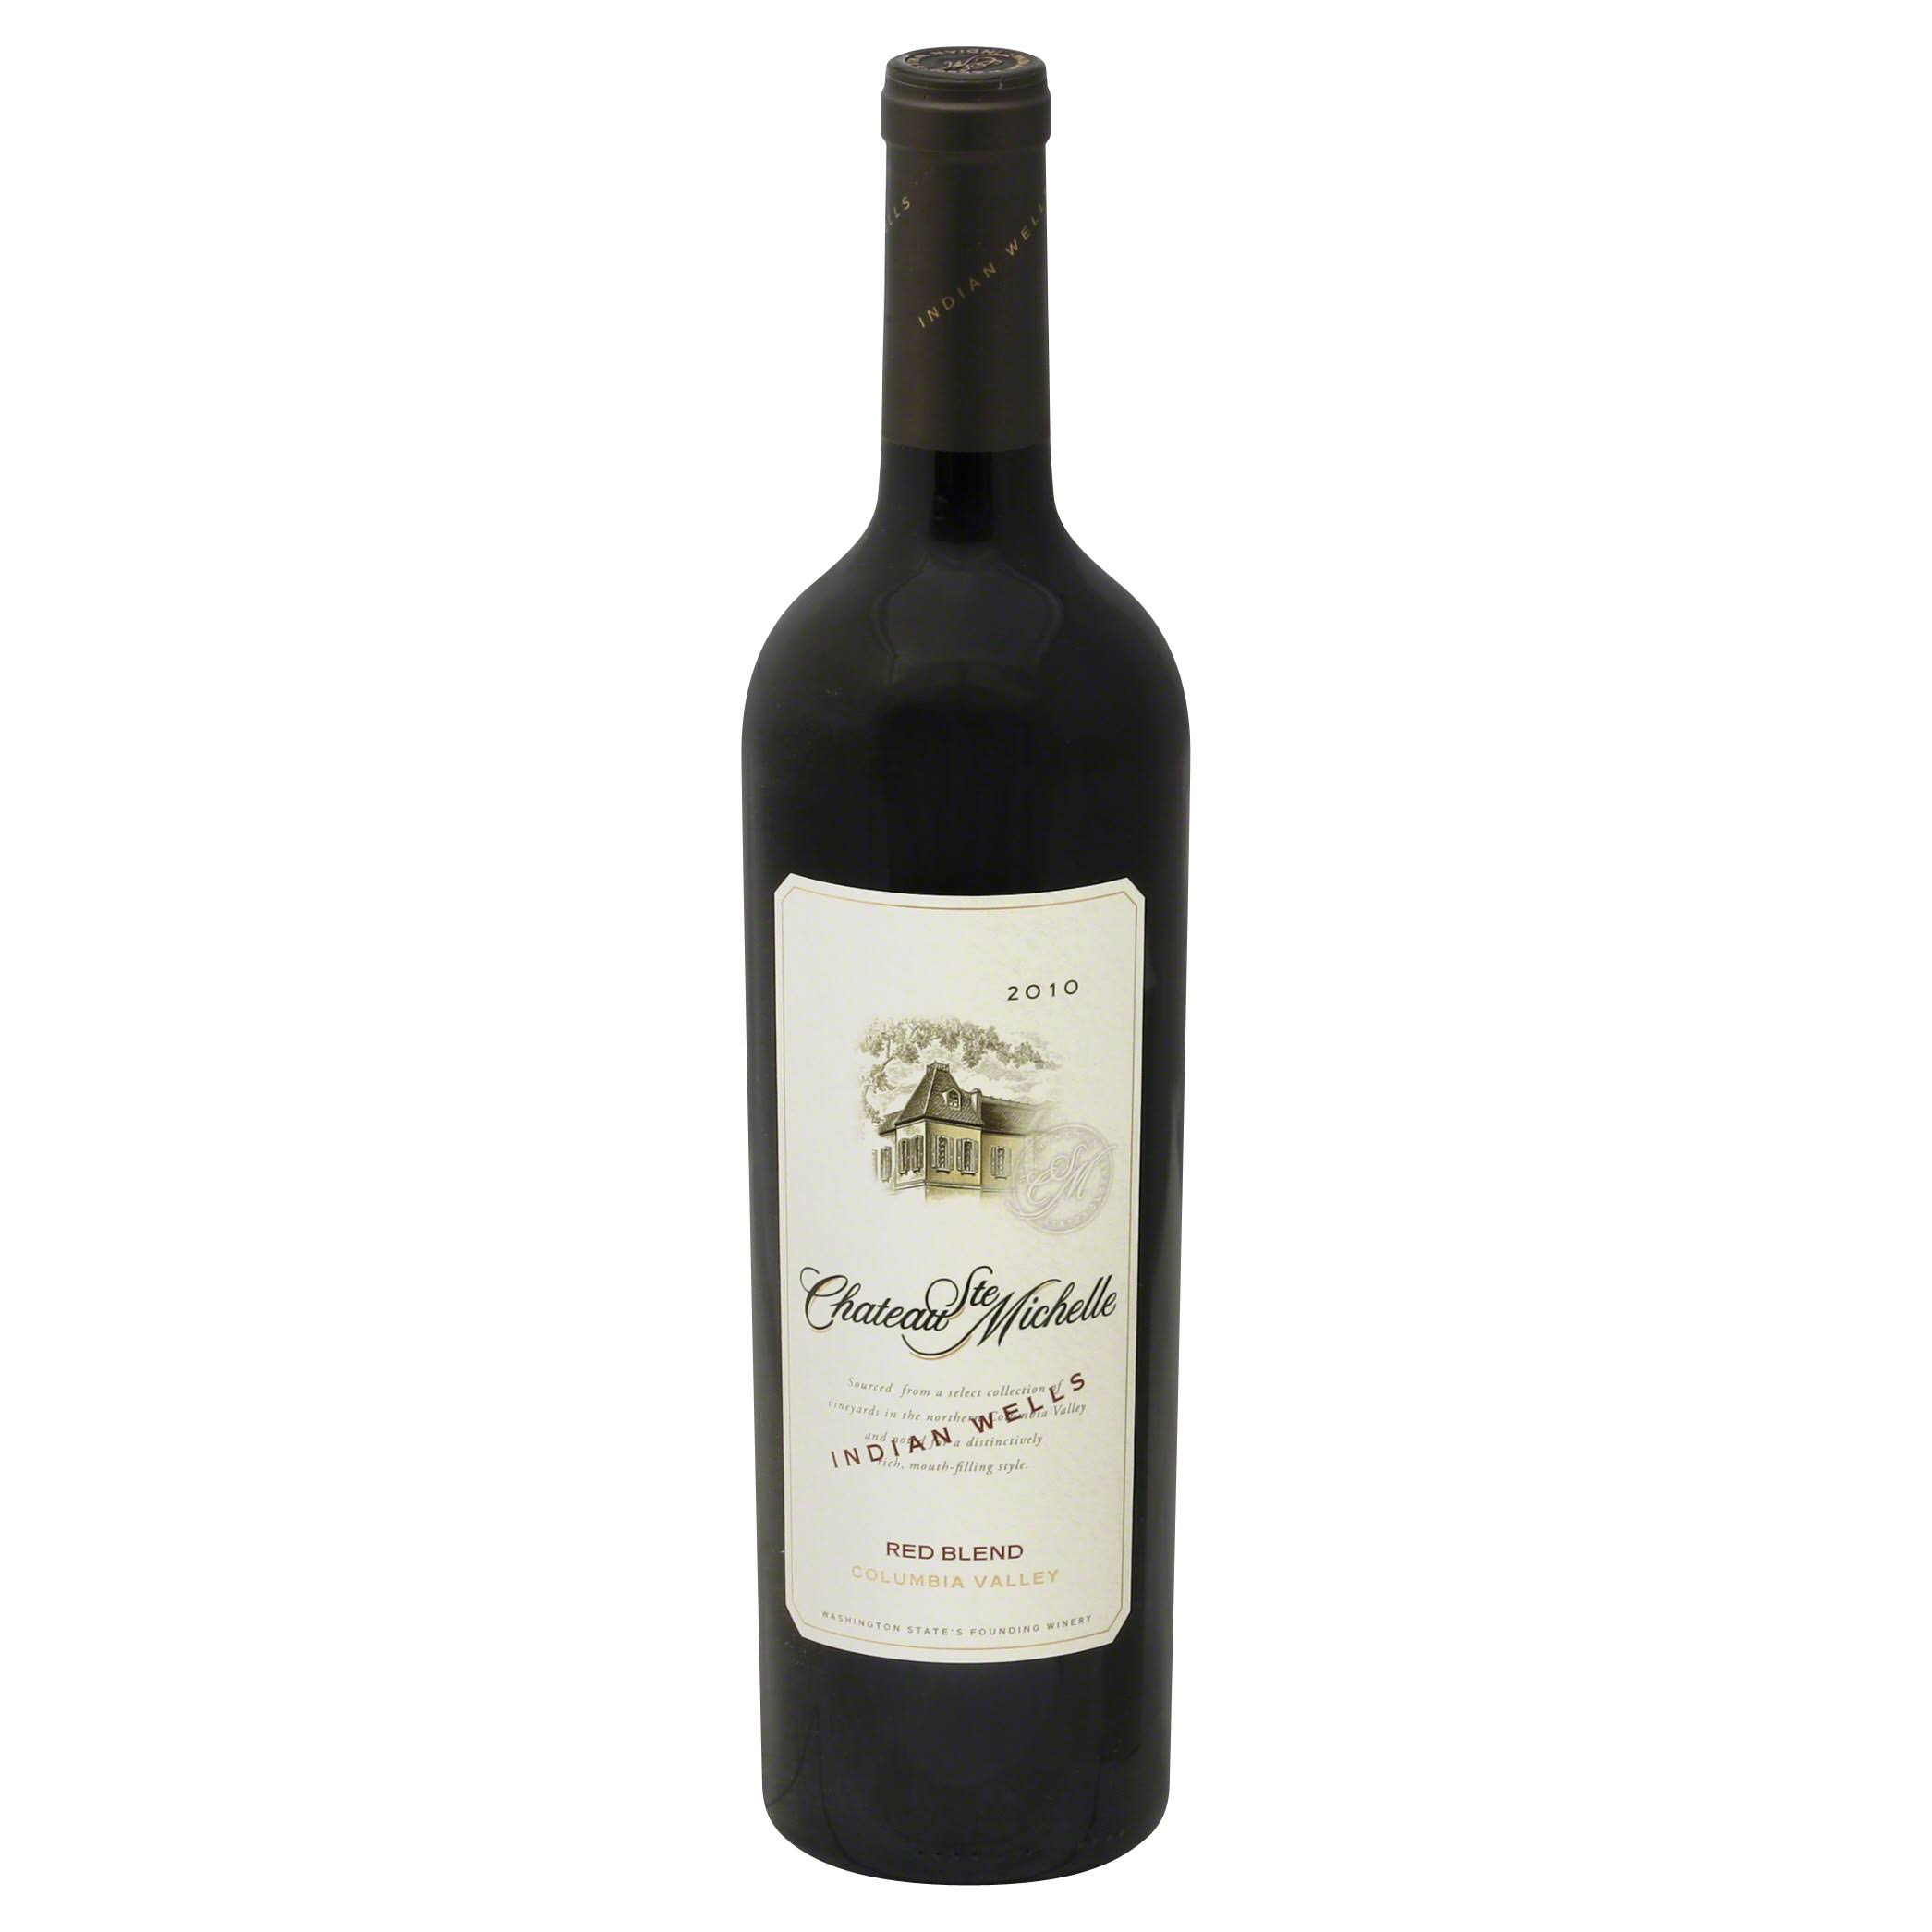 Chateau Ste Michelle Red Blend, Columbia Valley, 2010 - 750 ml